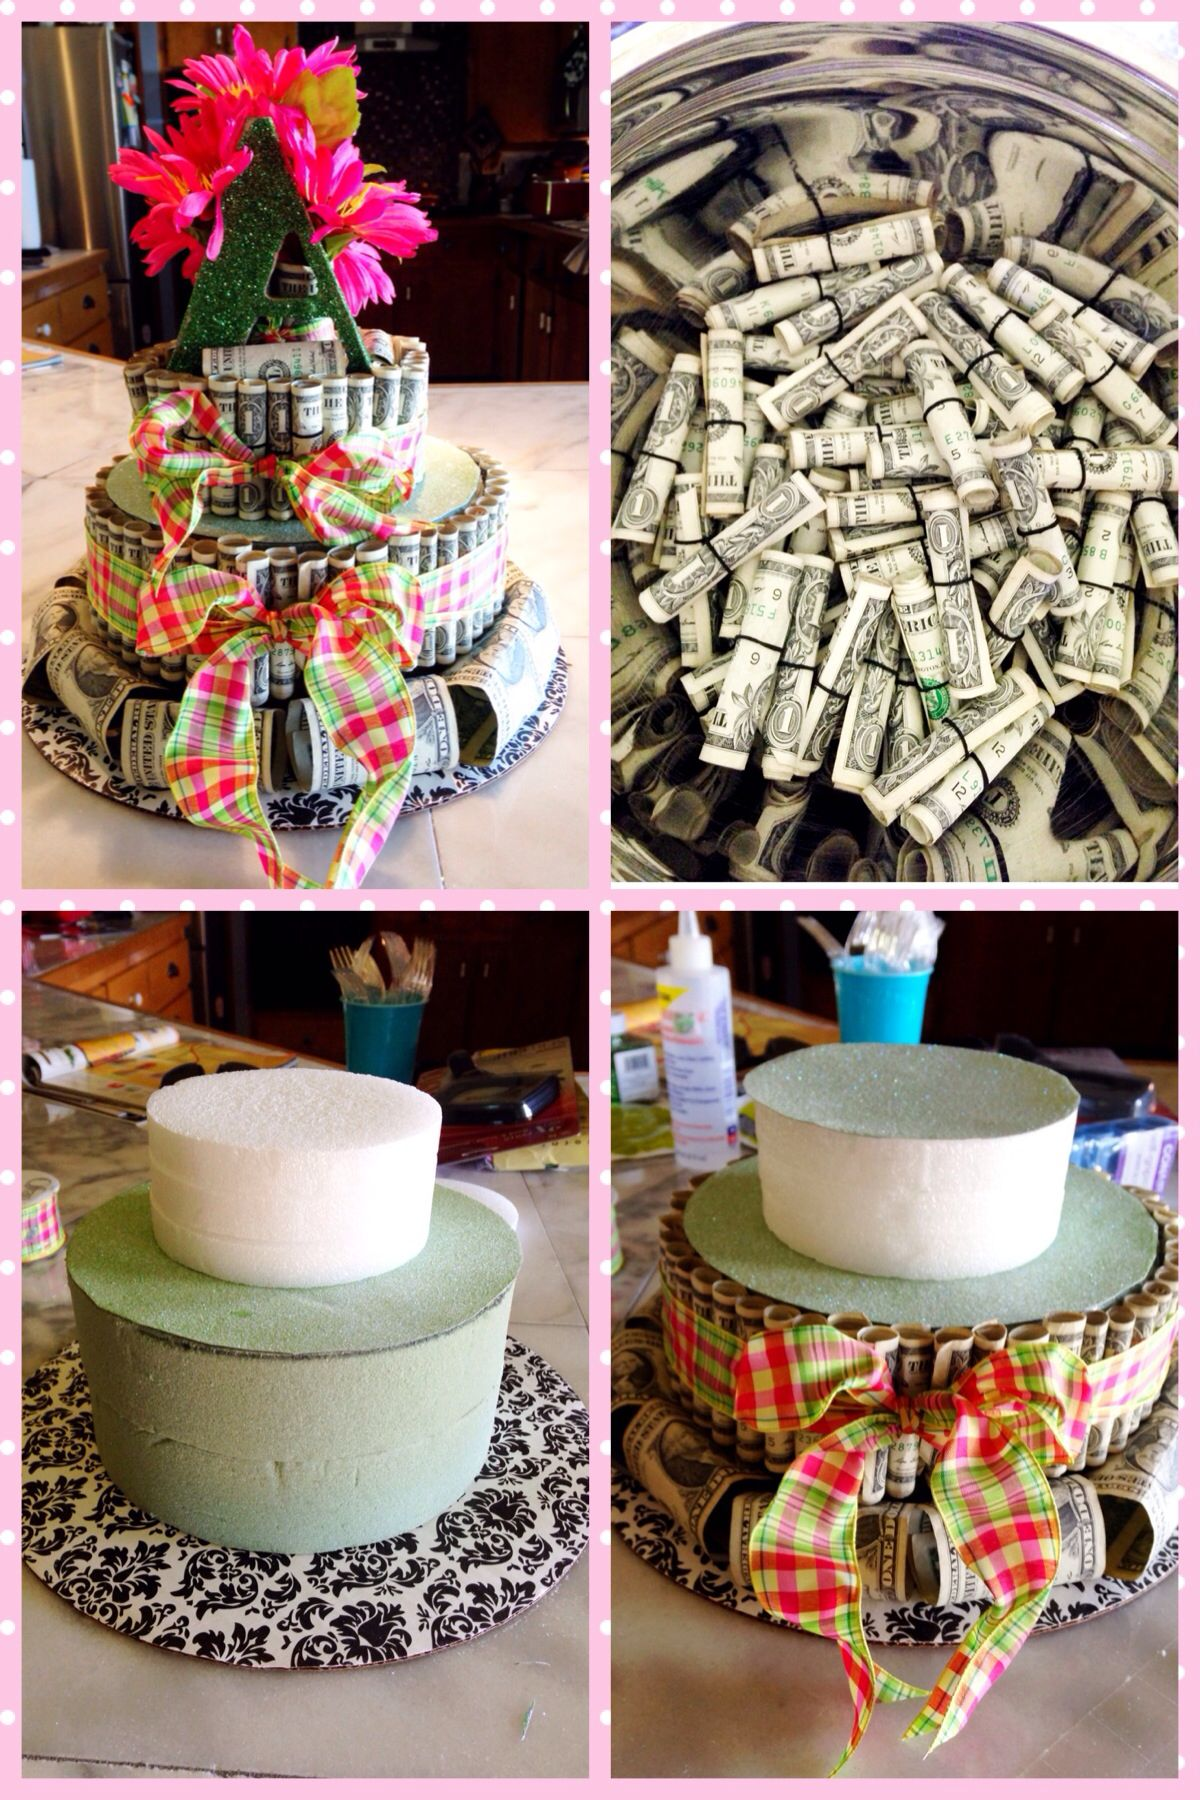 Money Cake 100 Money Cake Birthday Money Creative Money Gifts